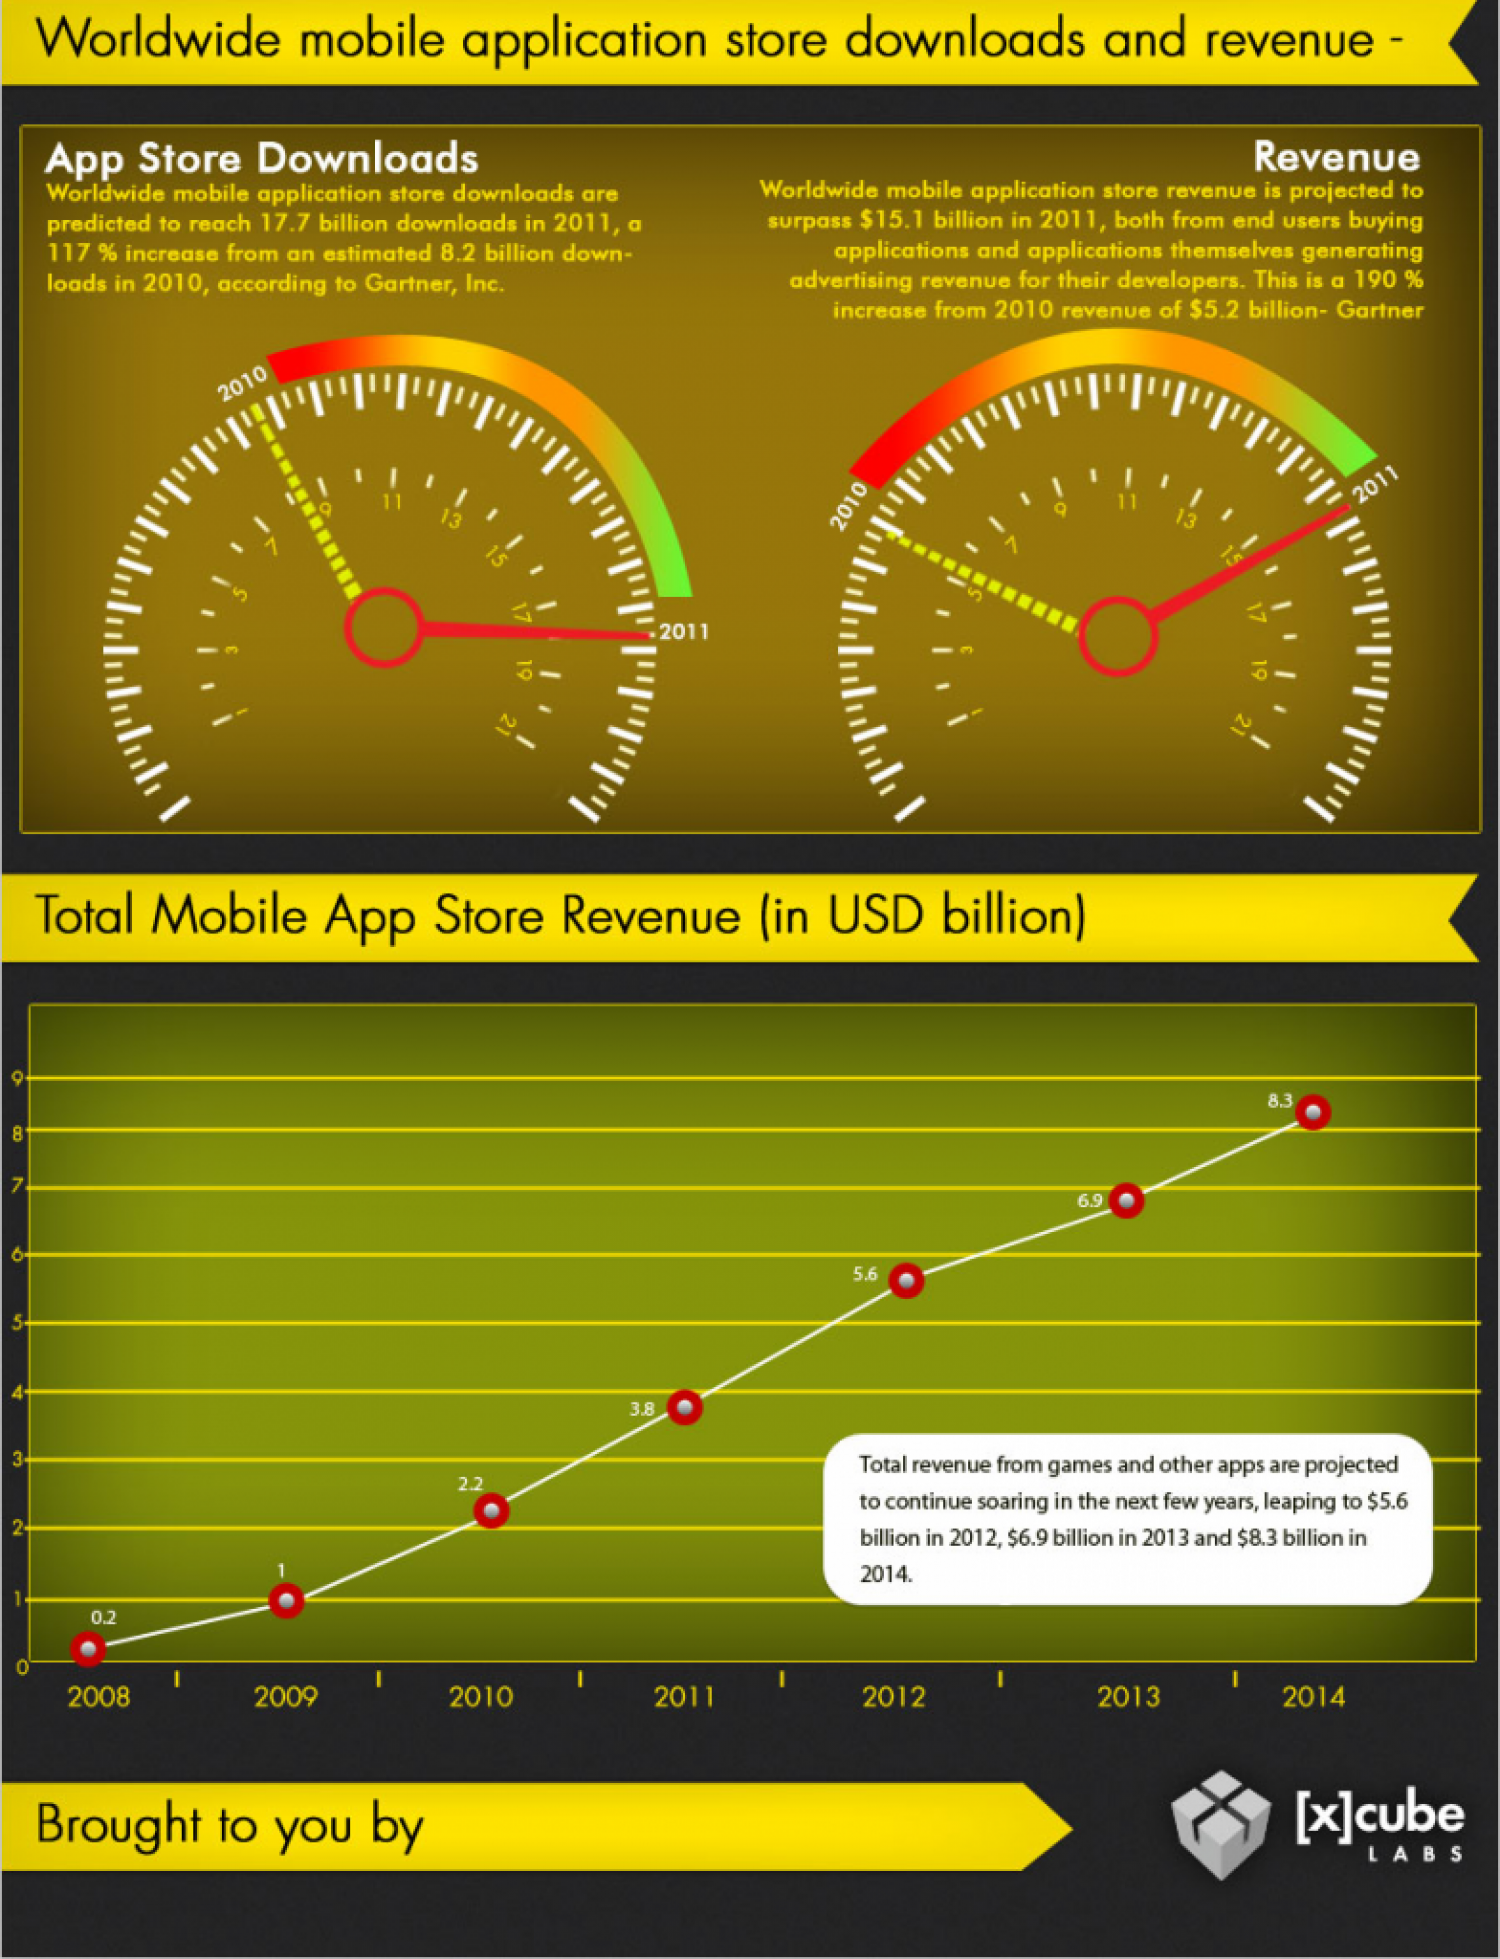 Worldwide Mobile Application Store Downloads and Revenue  Infographic